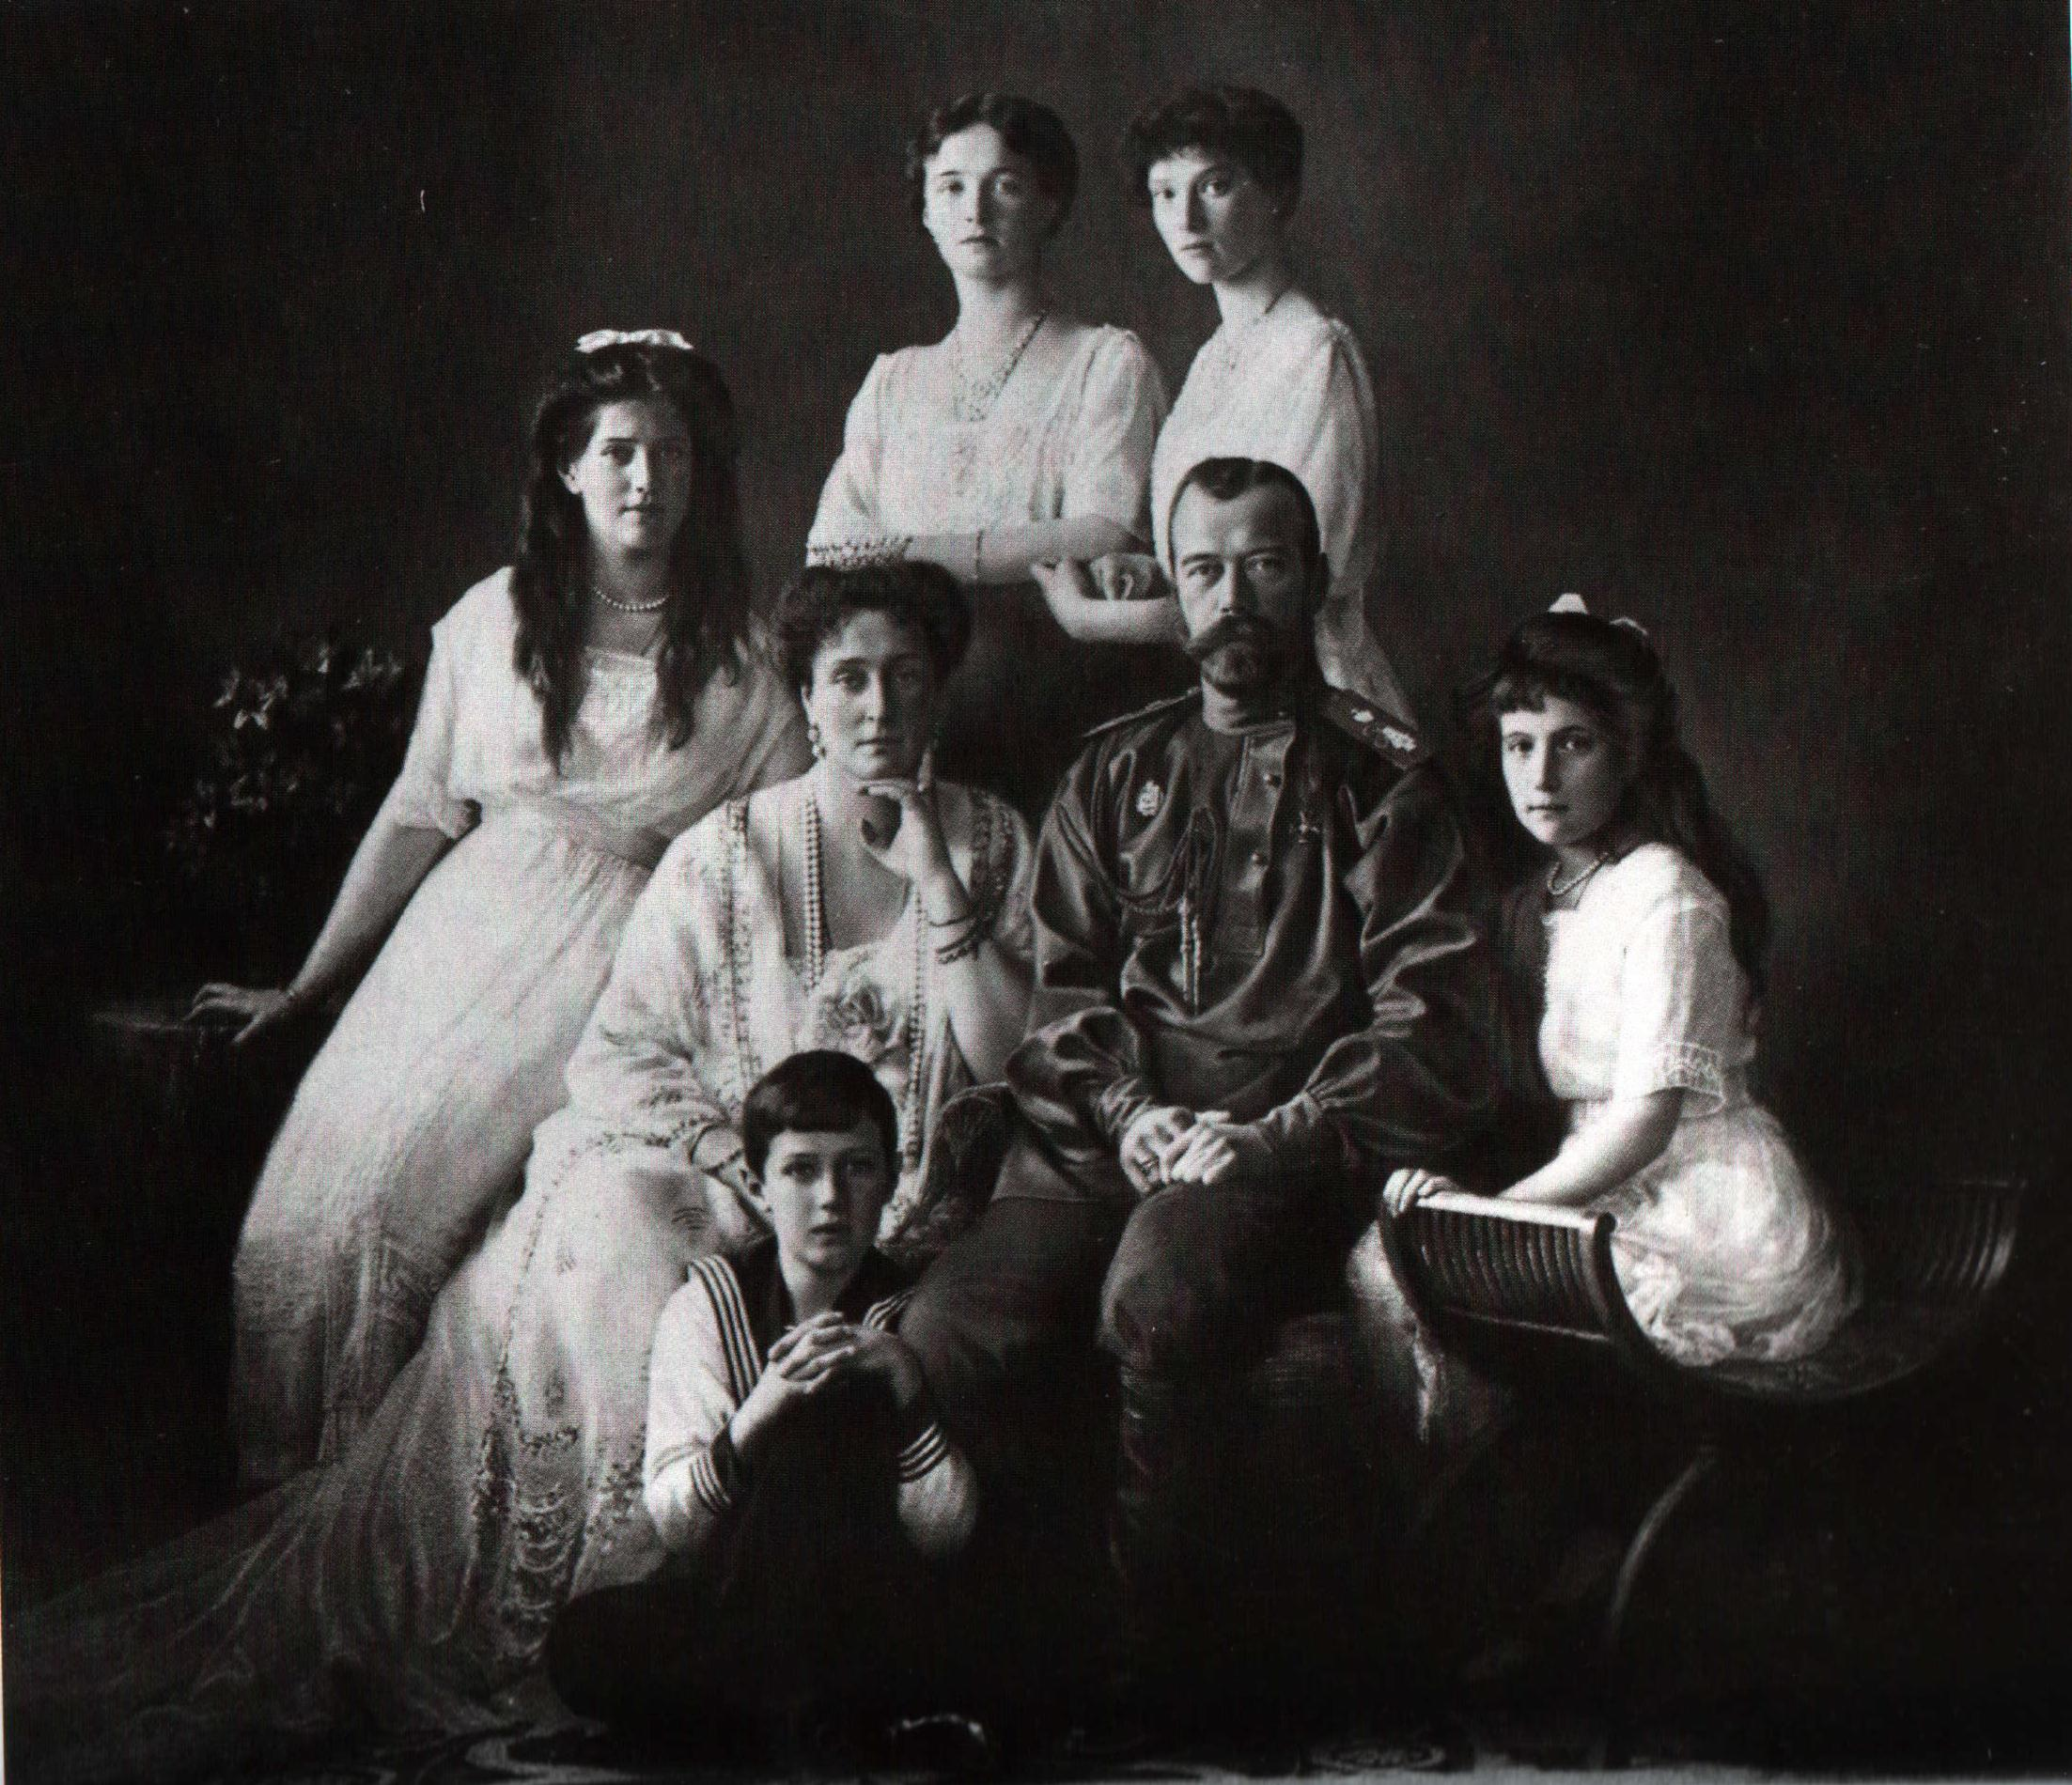 The Russian imperial family, 1913. Left to right: Grand Duchess Maria, Tsarina Alexandra, Grand Duchesses Olga and Tatiana, Tsar Nicholas II, and Grand Duchess Anastasia. Tsarevich Alexei sits in front of his parents.